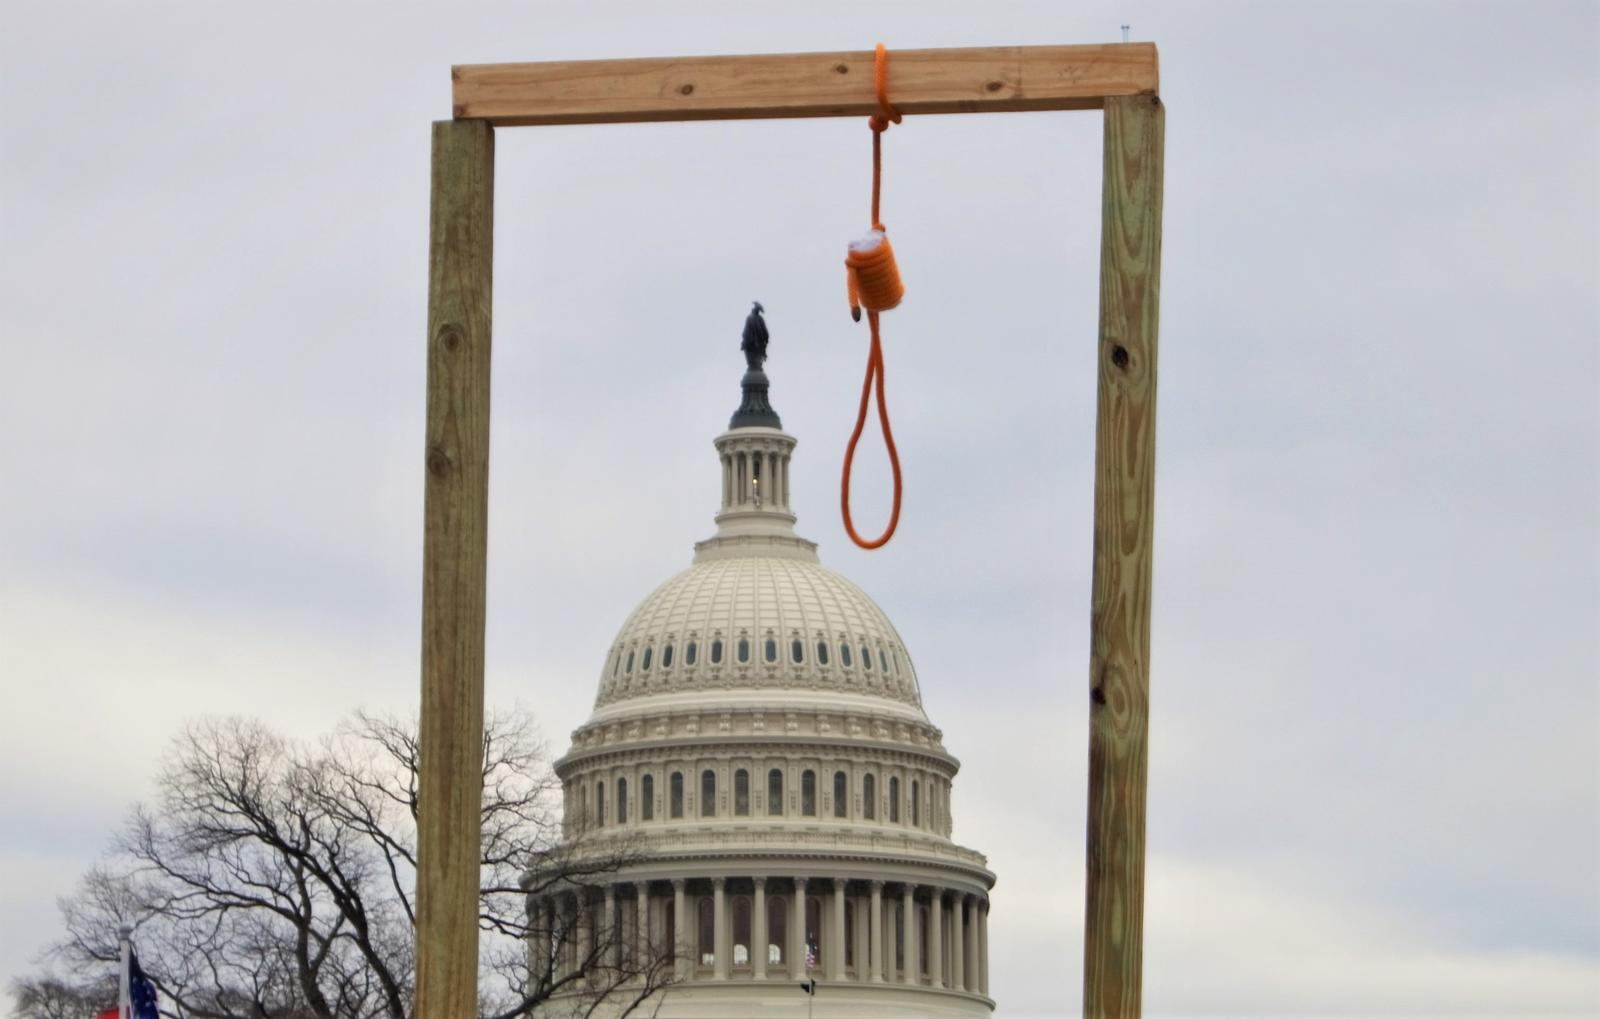 Gallows near the US Capitol, January 6, 2021